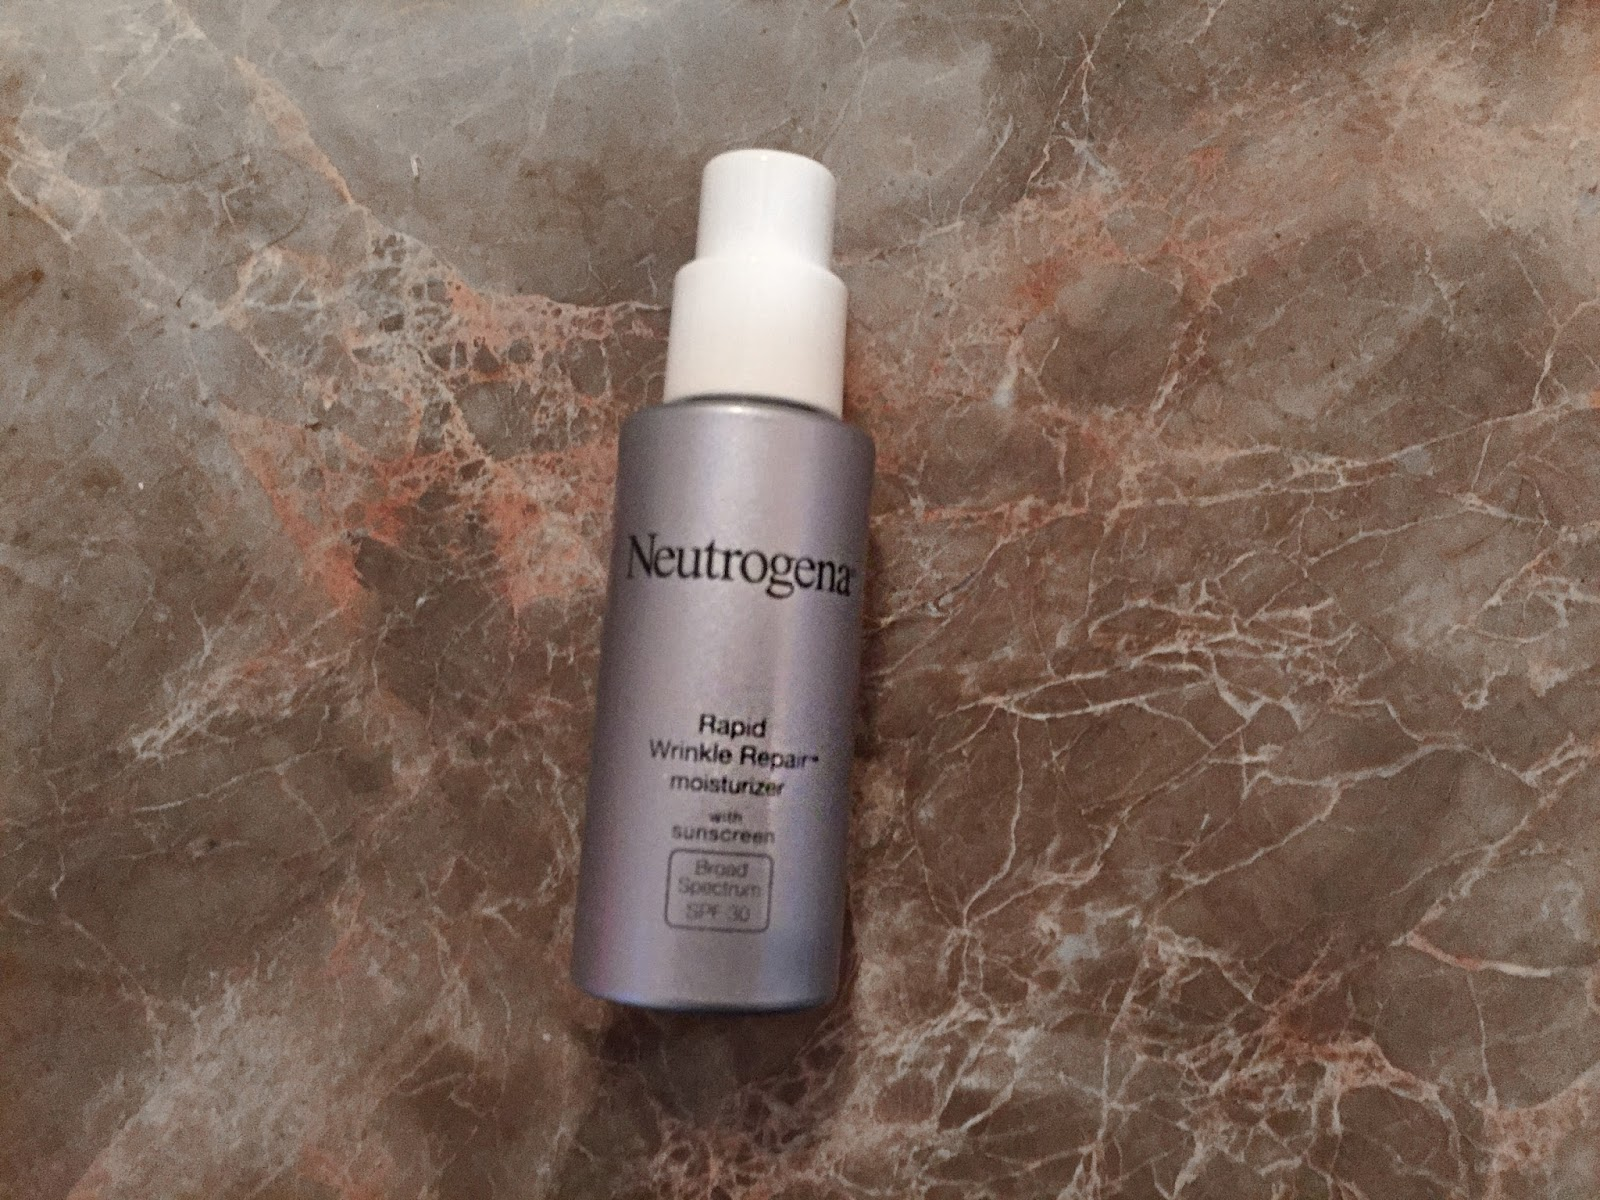 Neutrogena Rapid Wrinkle Repair SPF